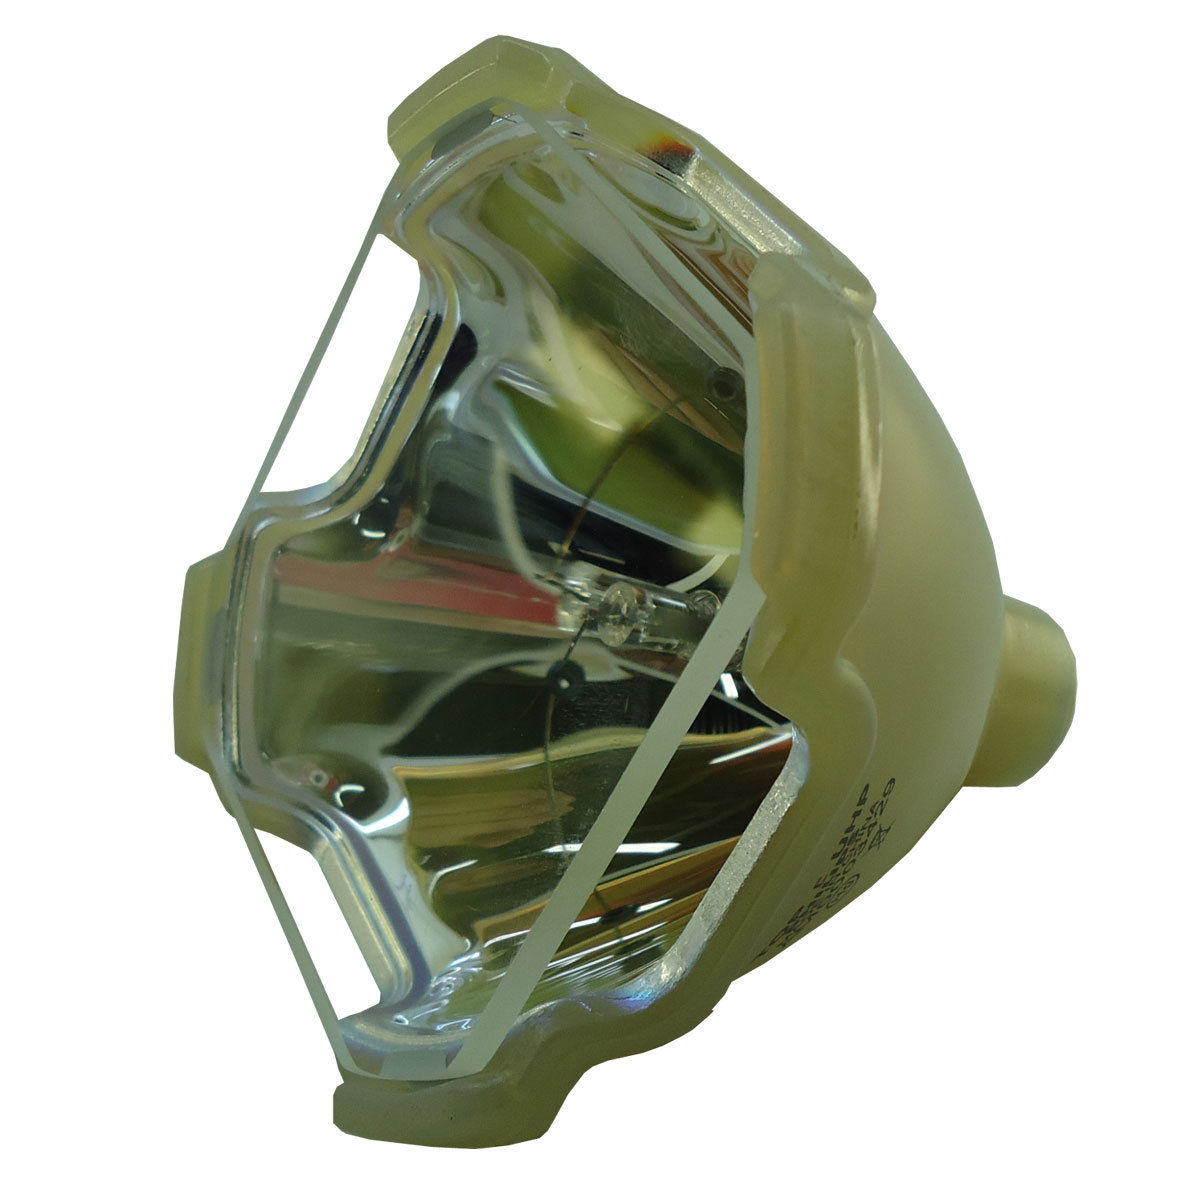 Compatible Bare Bulb 003-120188-01 for CHRISTIE LX55 Projector Lamp Bulb without housing compatible bare bulb lv lp03 2013a001 for canon lv 7300 projector lamp bulb without housing